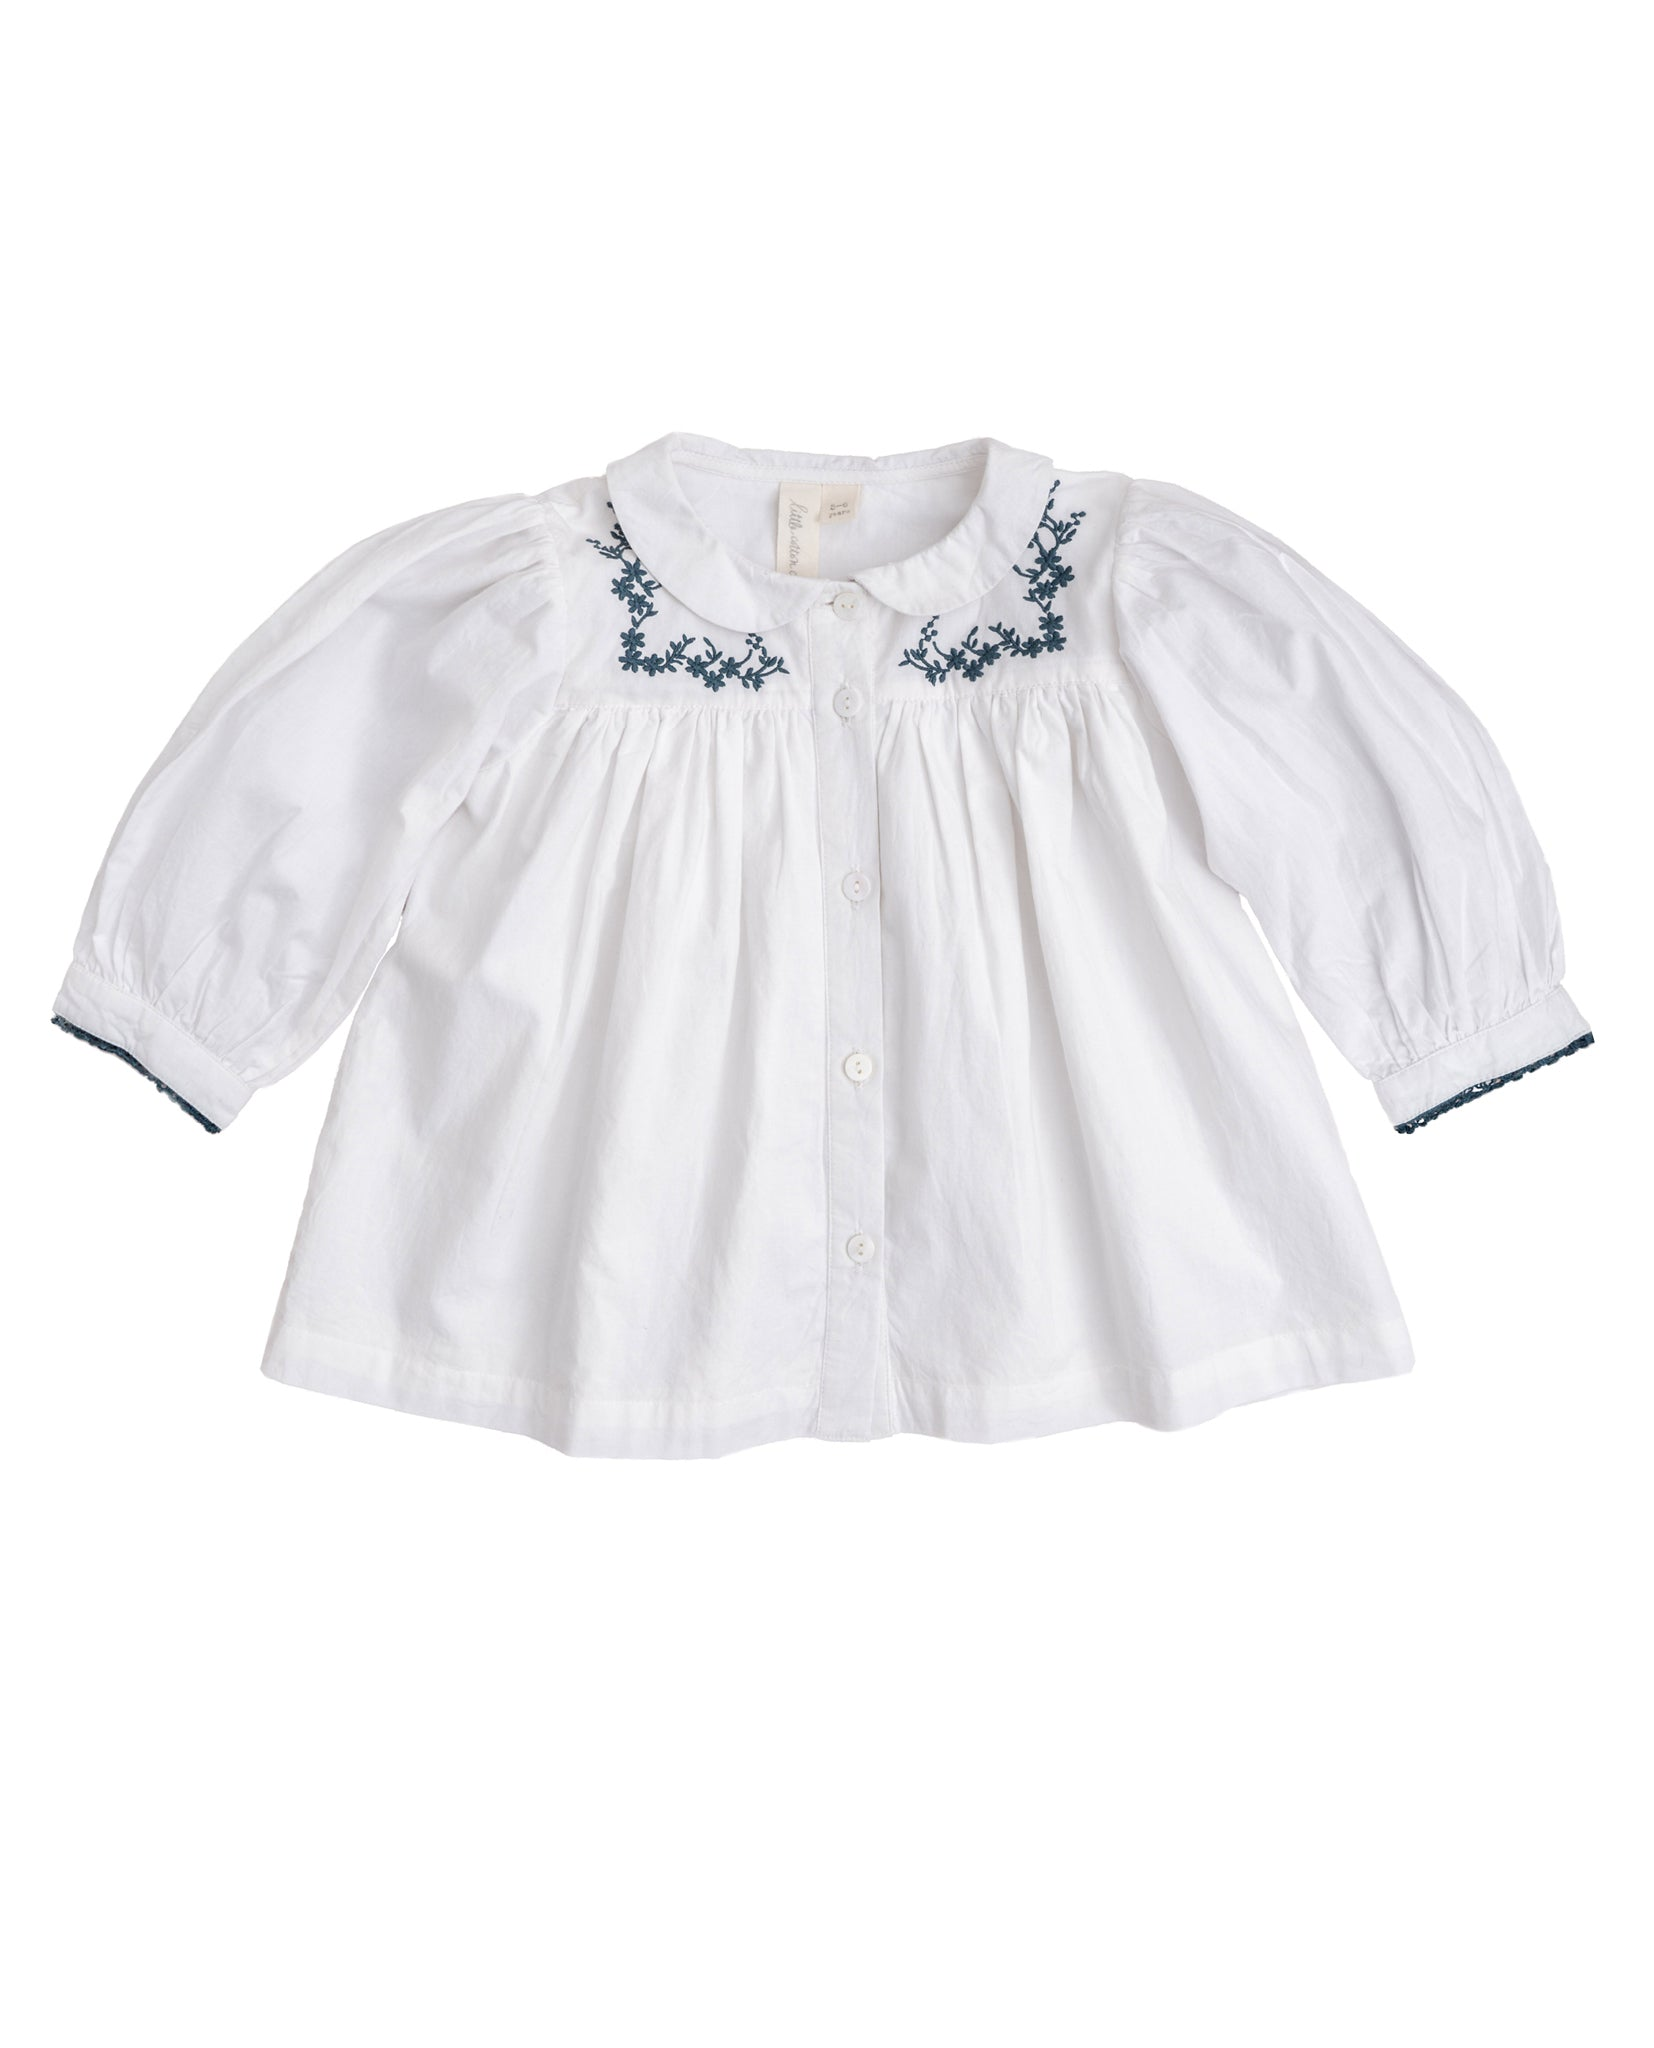 Eleanor Blouse - Off White With Blue Embroidery